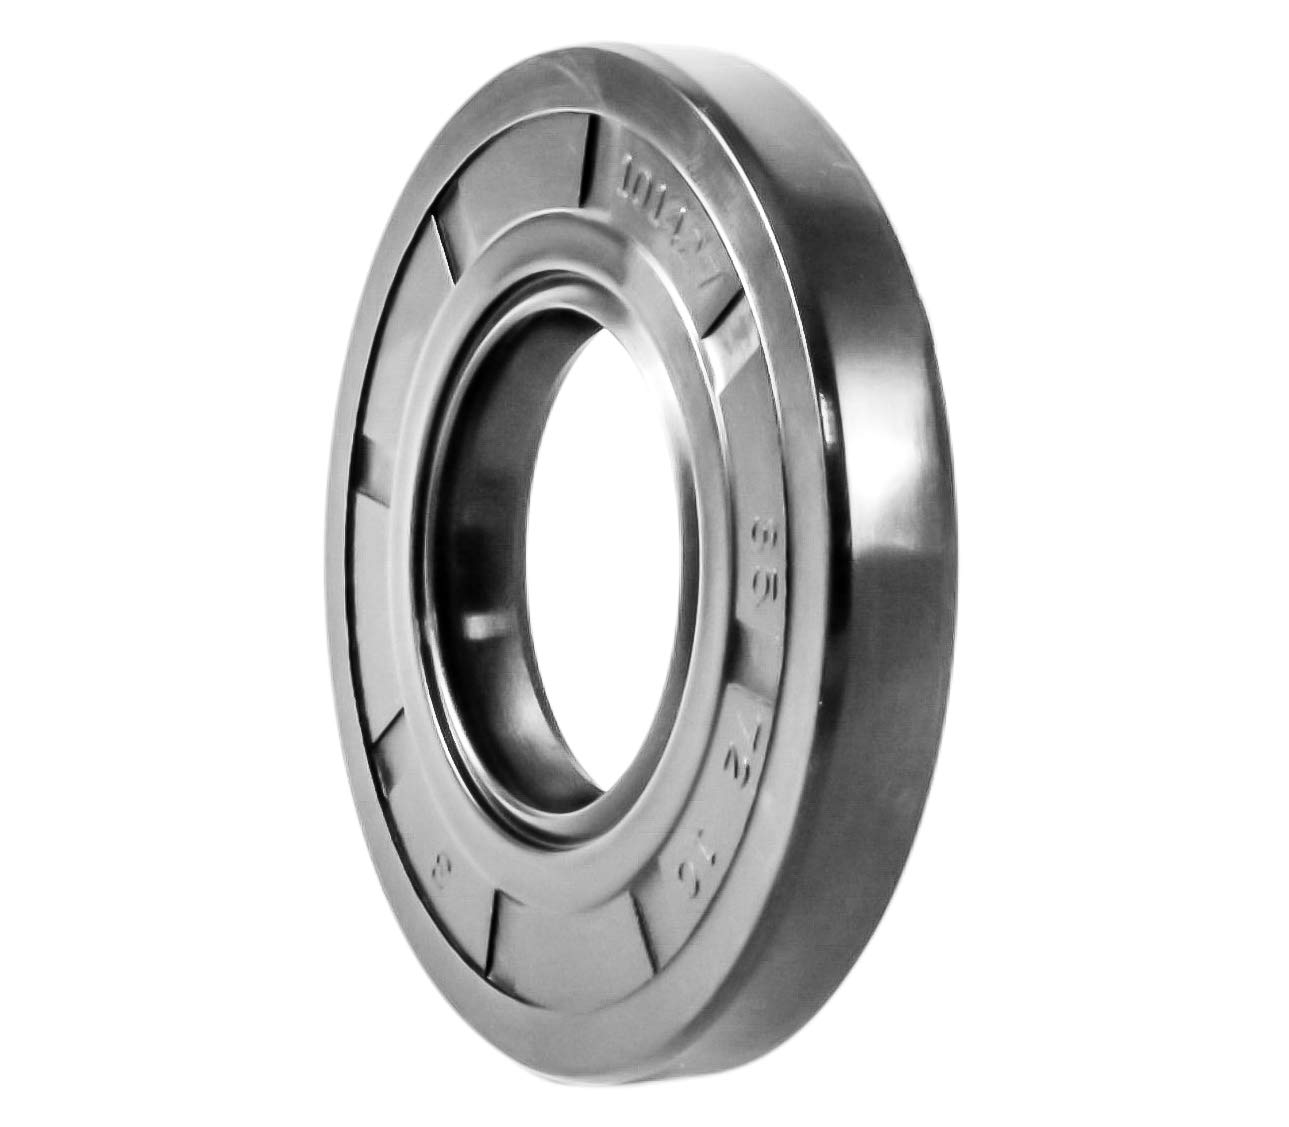 Oil Seal TC 12X28X7 Rubber Double Lip with Spring 12mmX28mmX7mm.